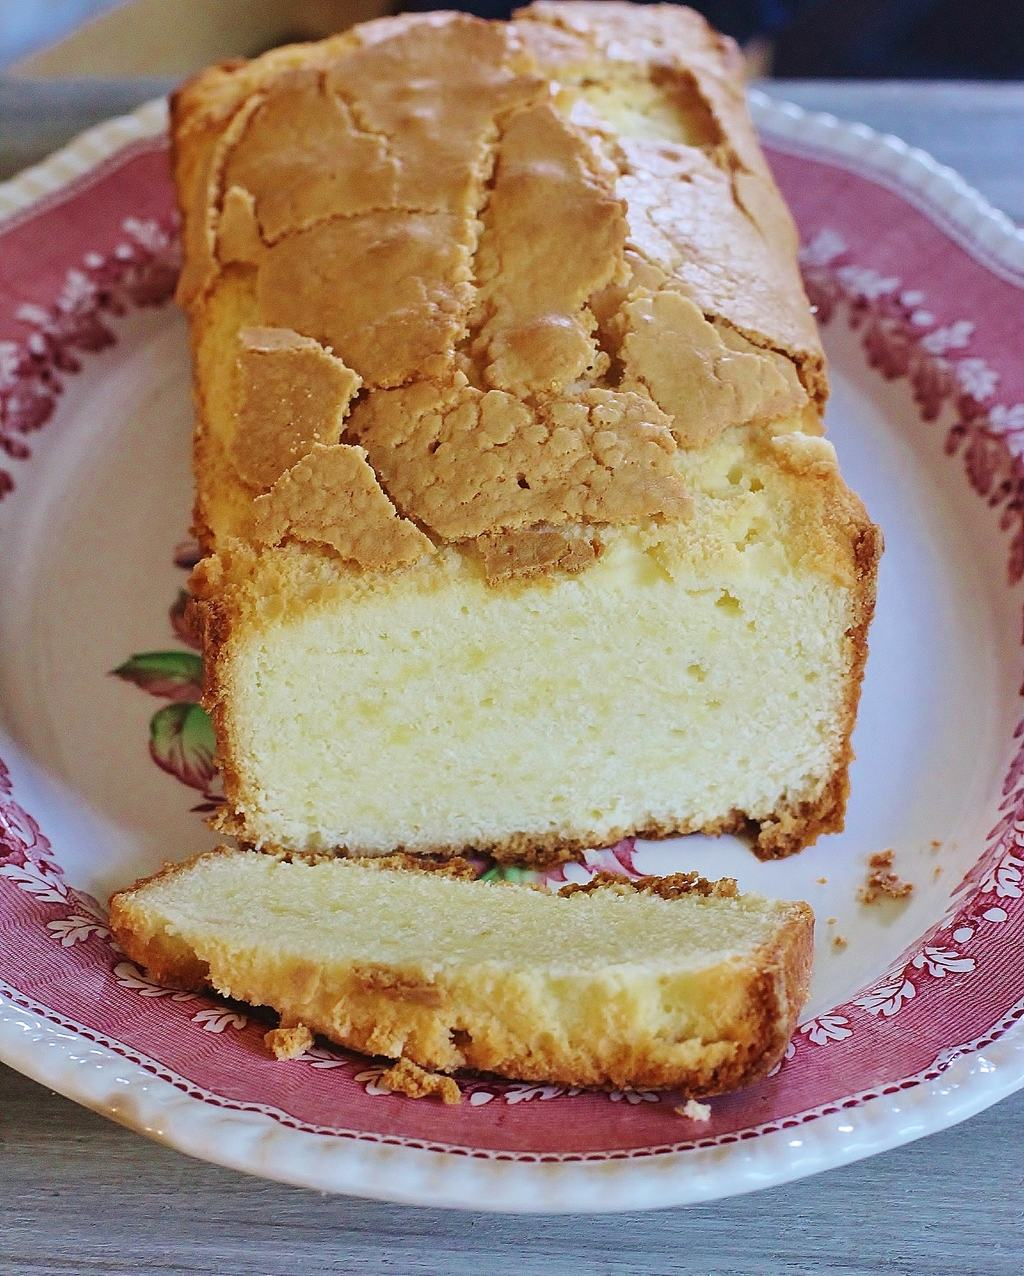 Buttermilk Pound Cake. Old fashioned taste and a moist, dense texture ...